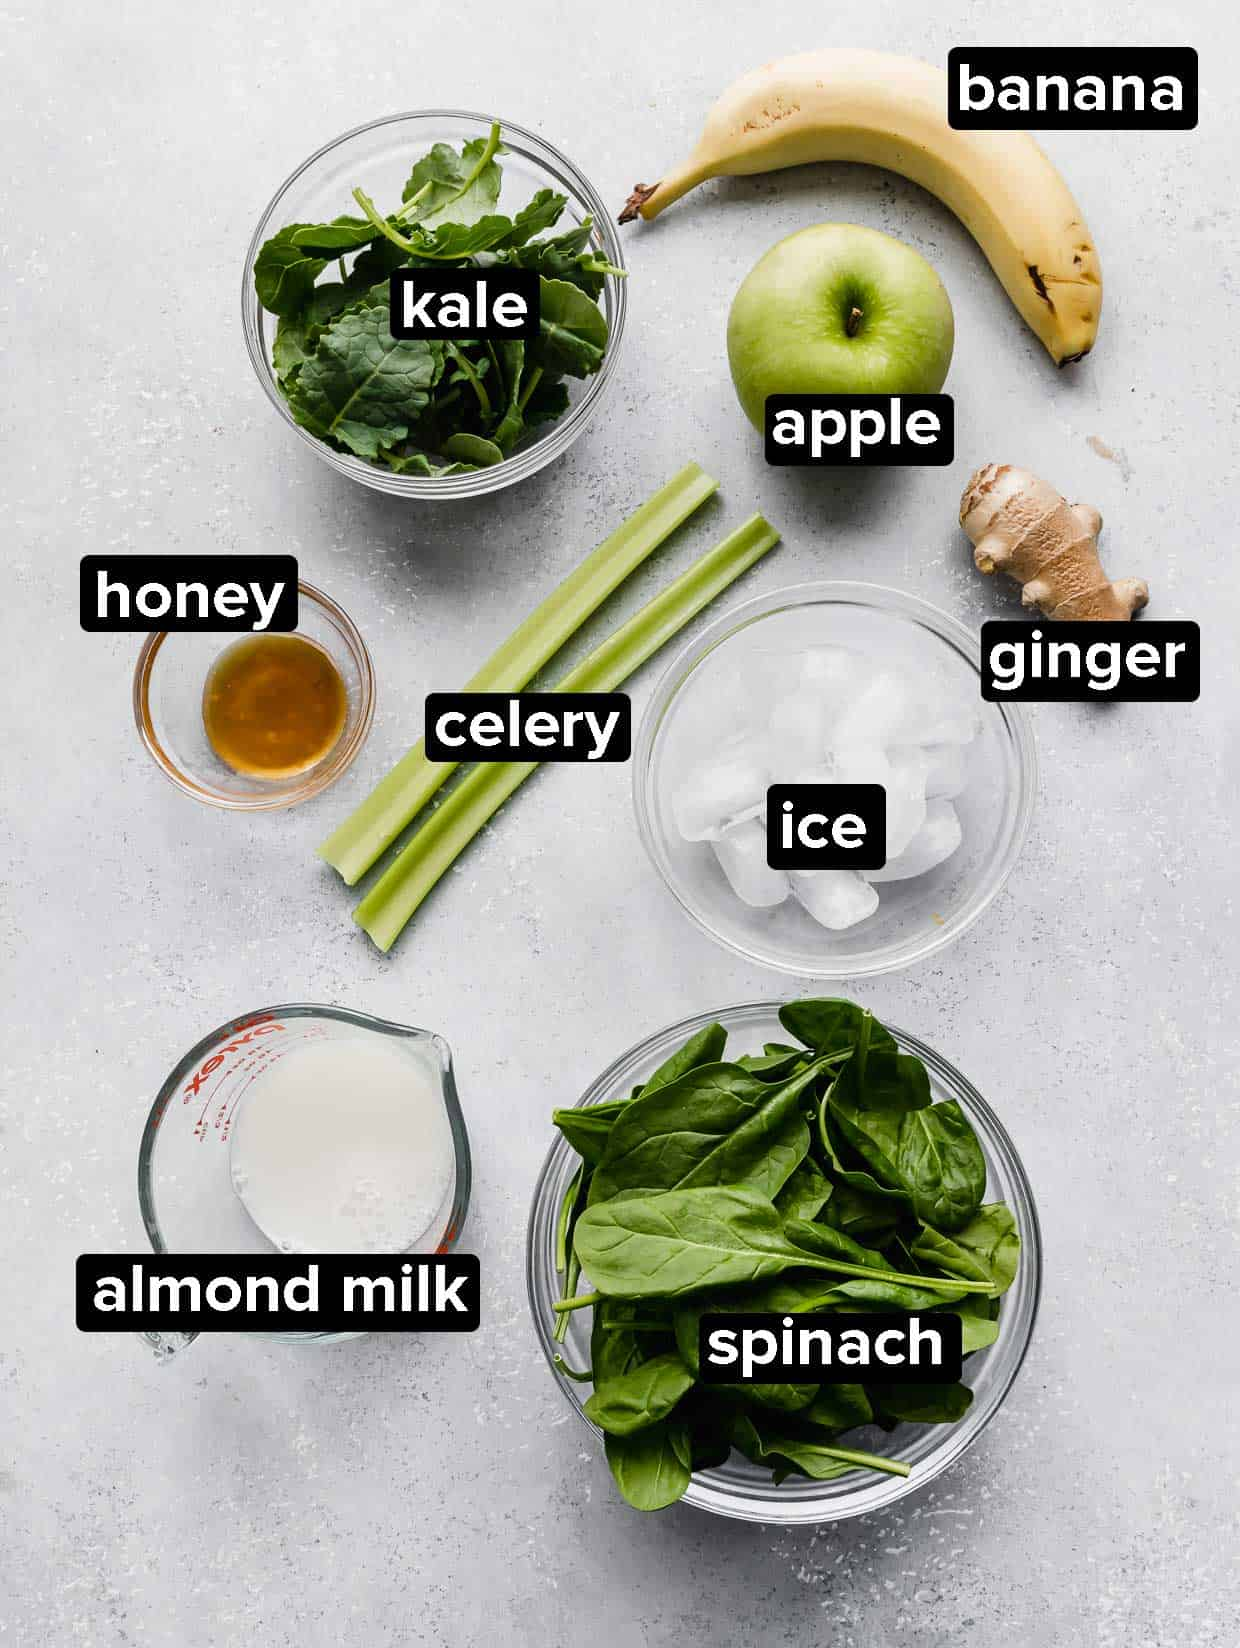 Ingredients used to make a celery smoothie: celery, apple, kale, spinach, banana, milk.